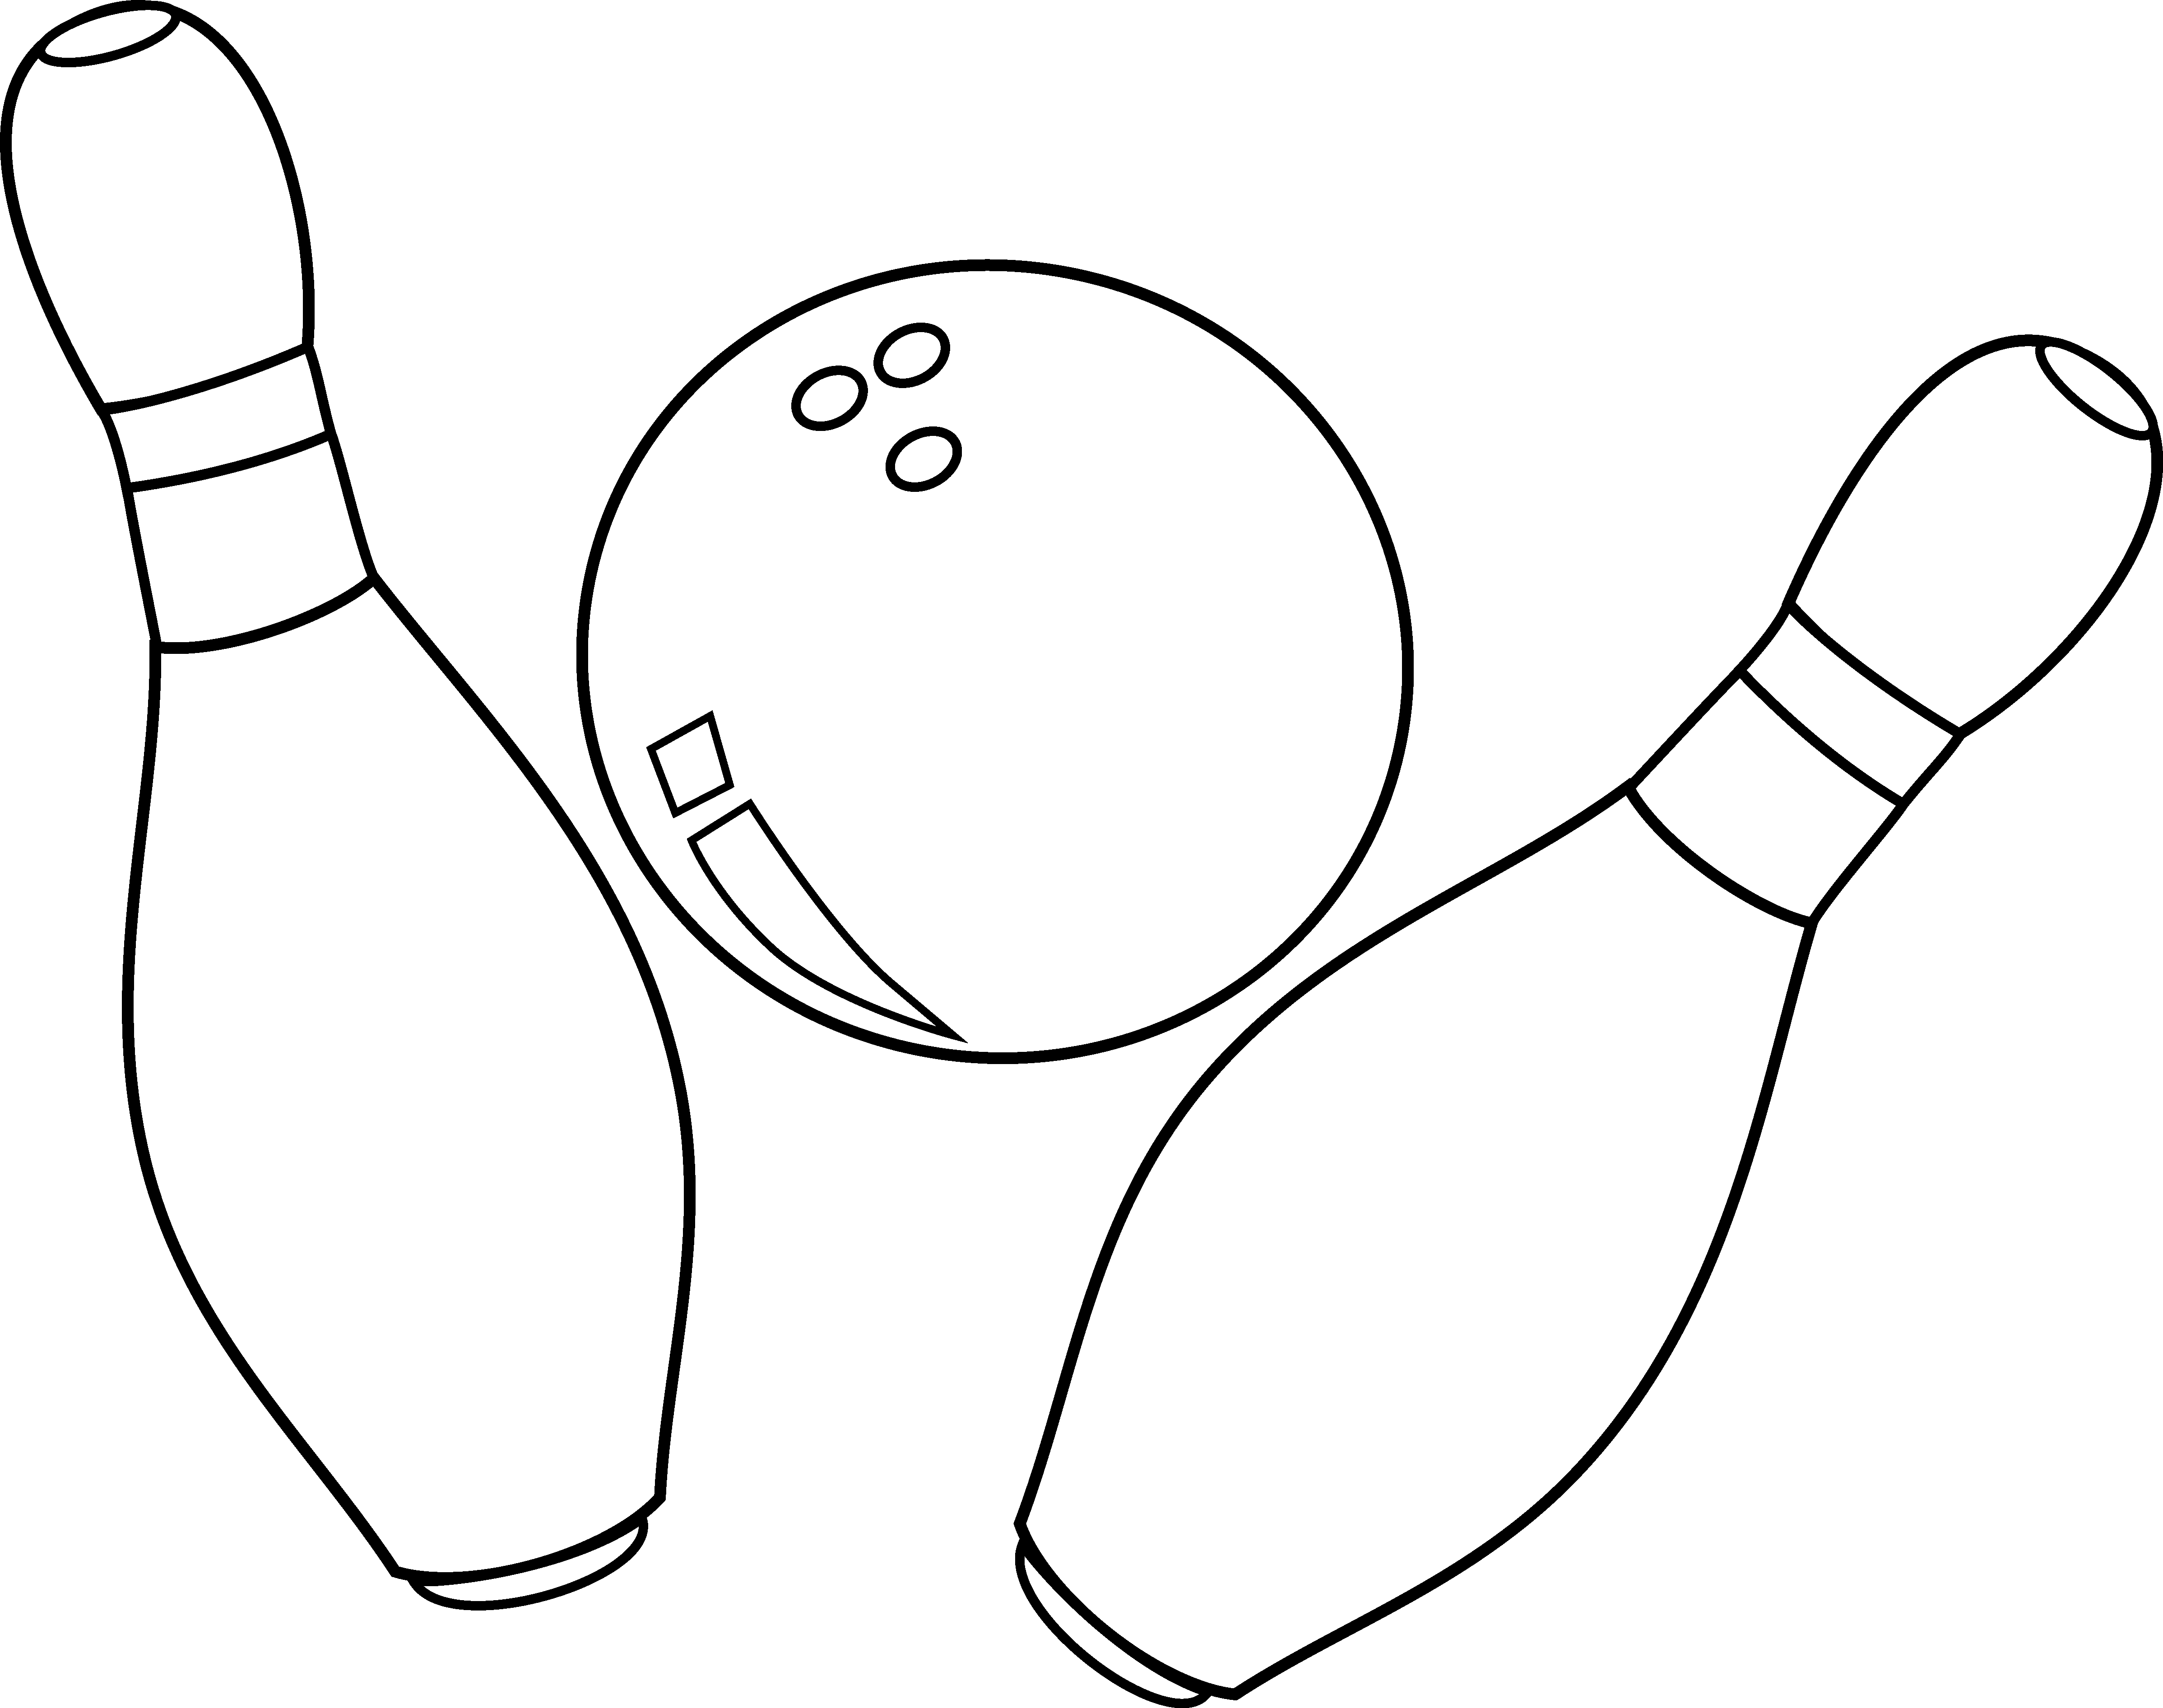 Bowling ball and pins black and white clipart png freeuse stock Free Pictures Of Bowling Pins And Balls, Download Free Clip Art ... png freeuse stock